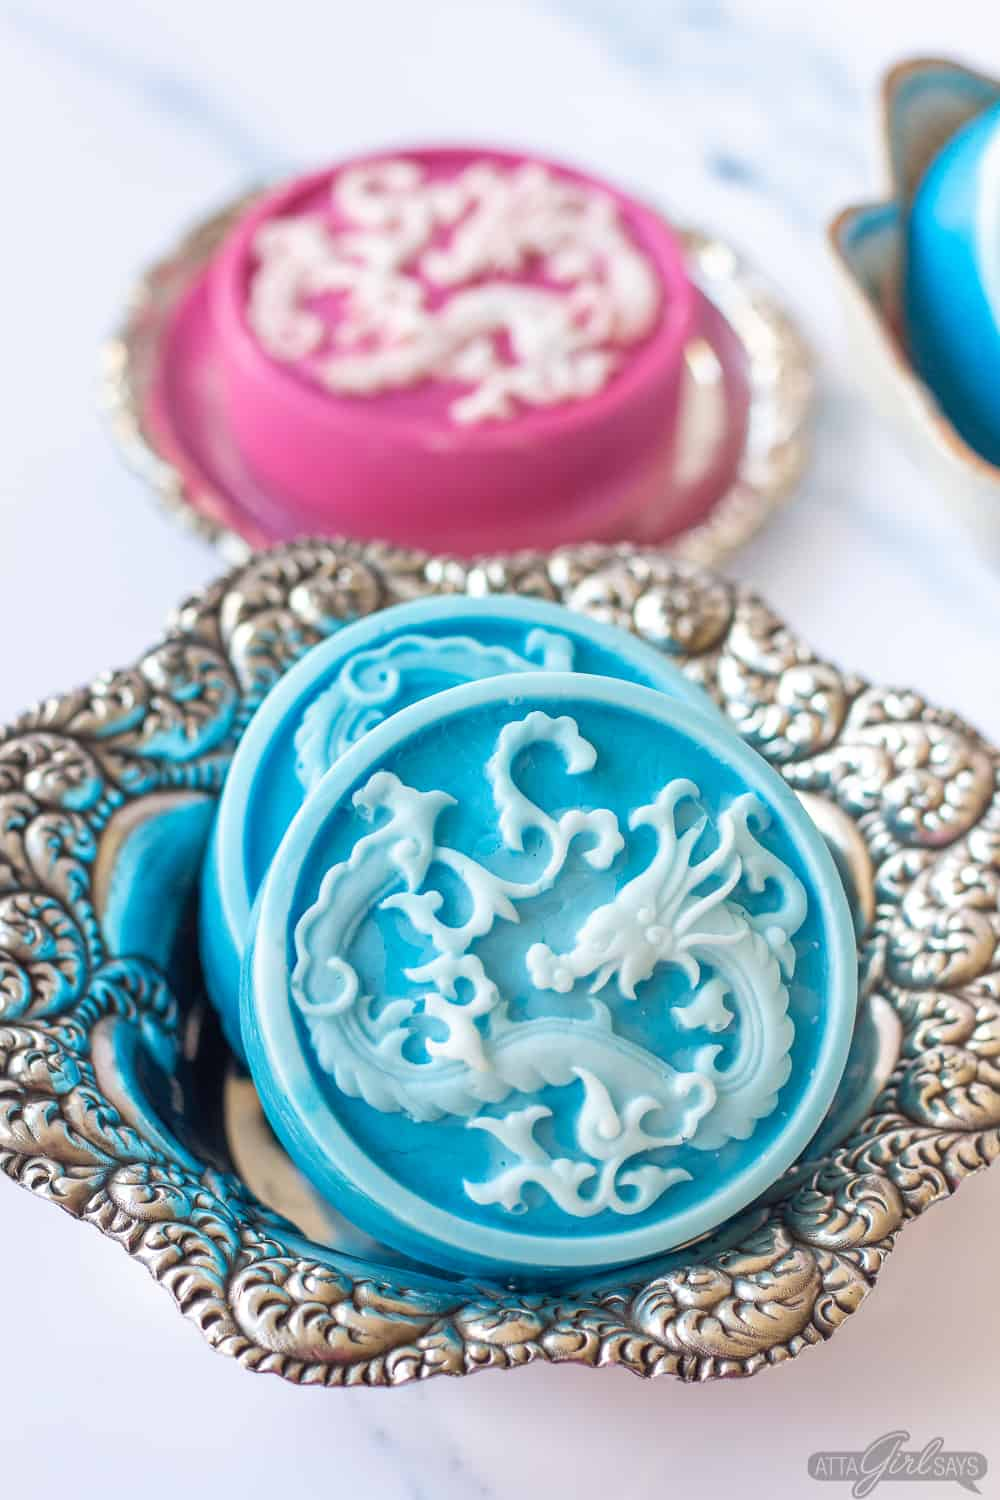 blue and white and pink and white decorative soaps with dragon motif